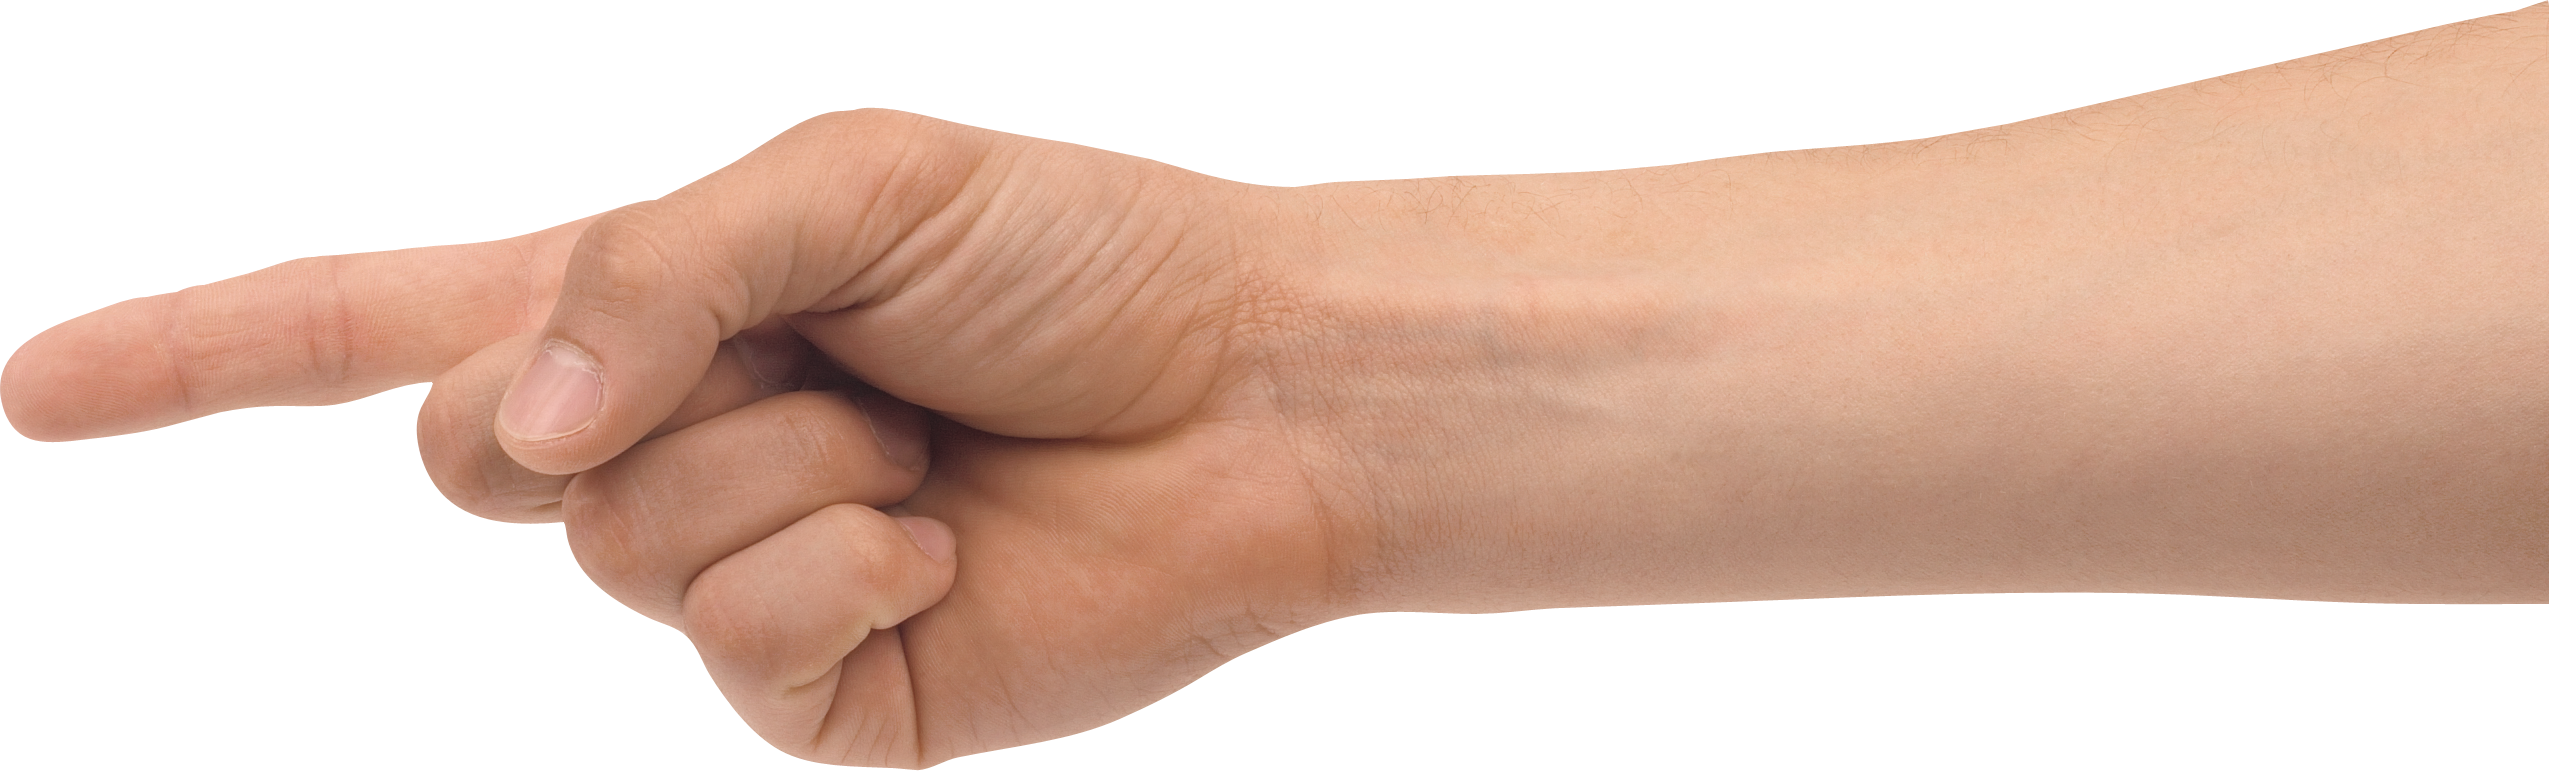 Free Png Hand Pointing Finger - Hands PNG, hand image free